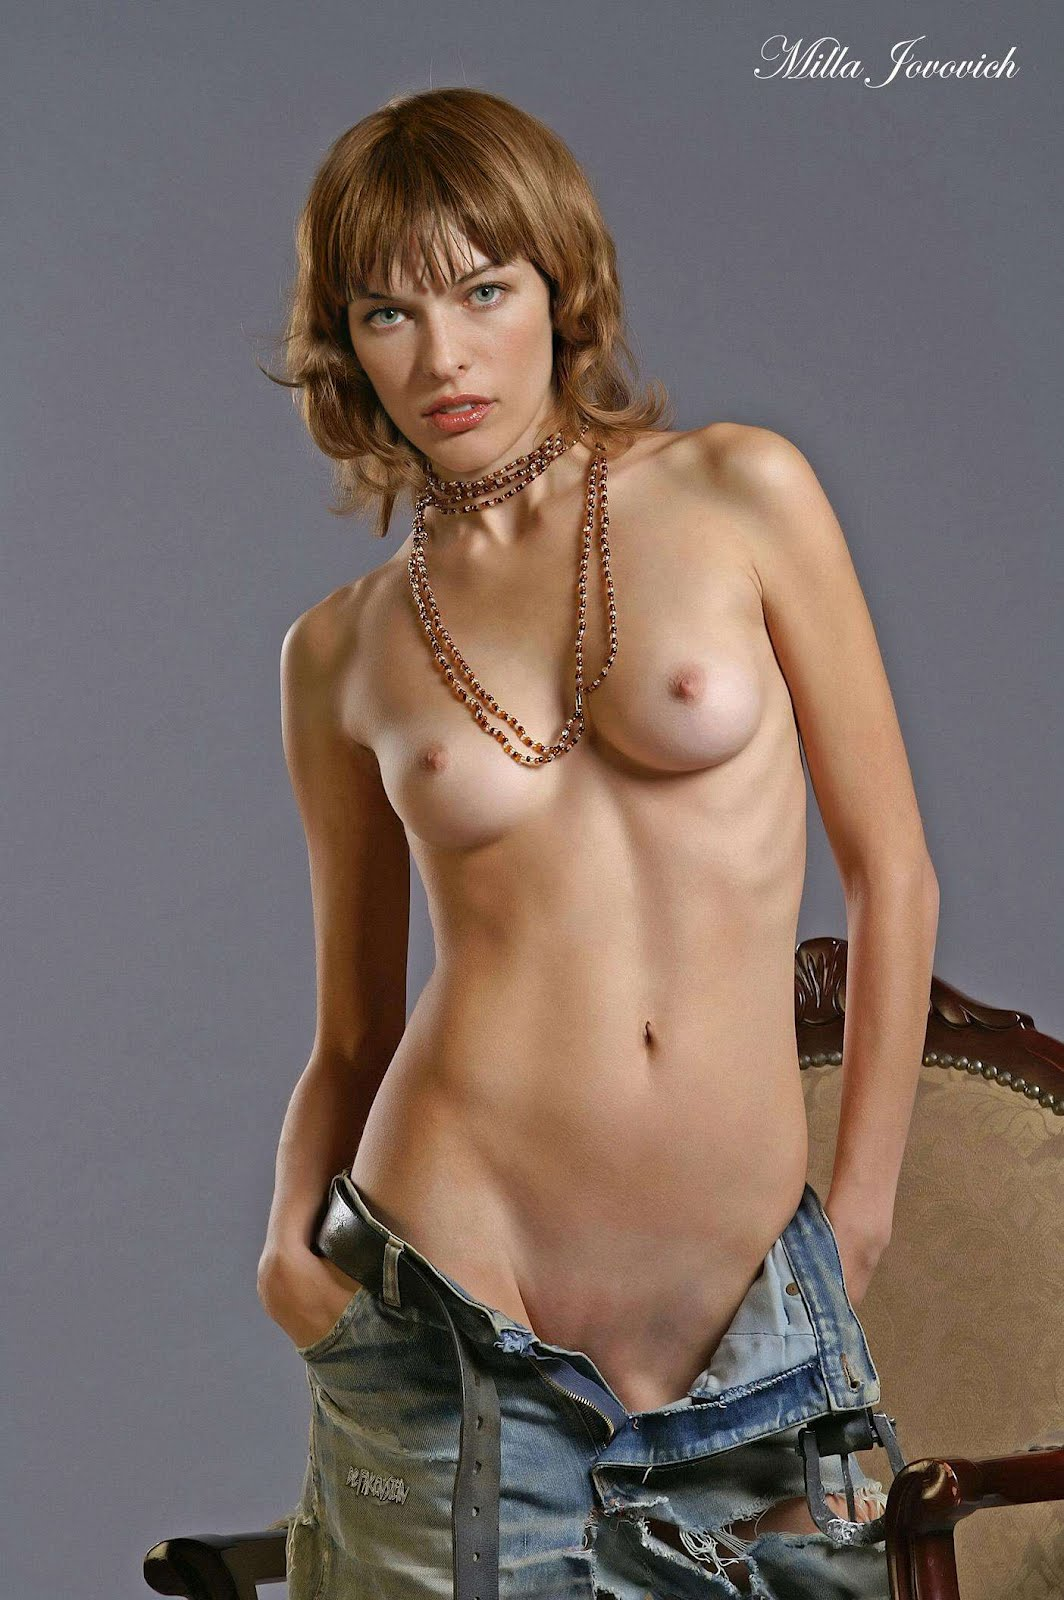 Milla Jovovich Nude Gallery | naked profane